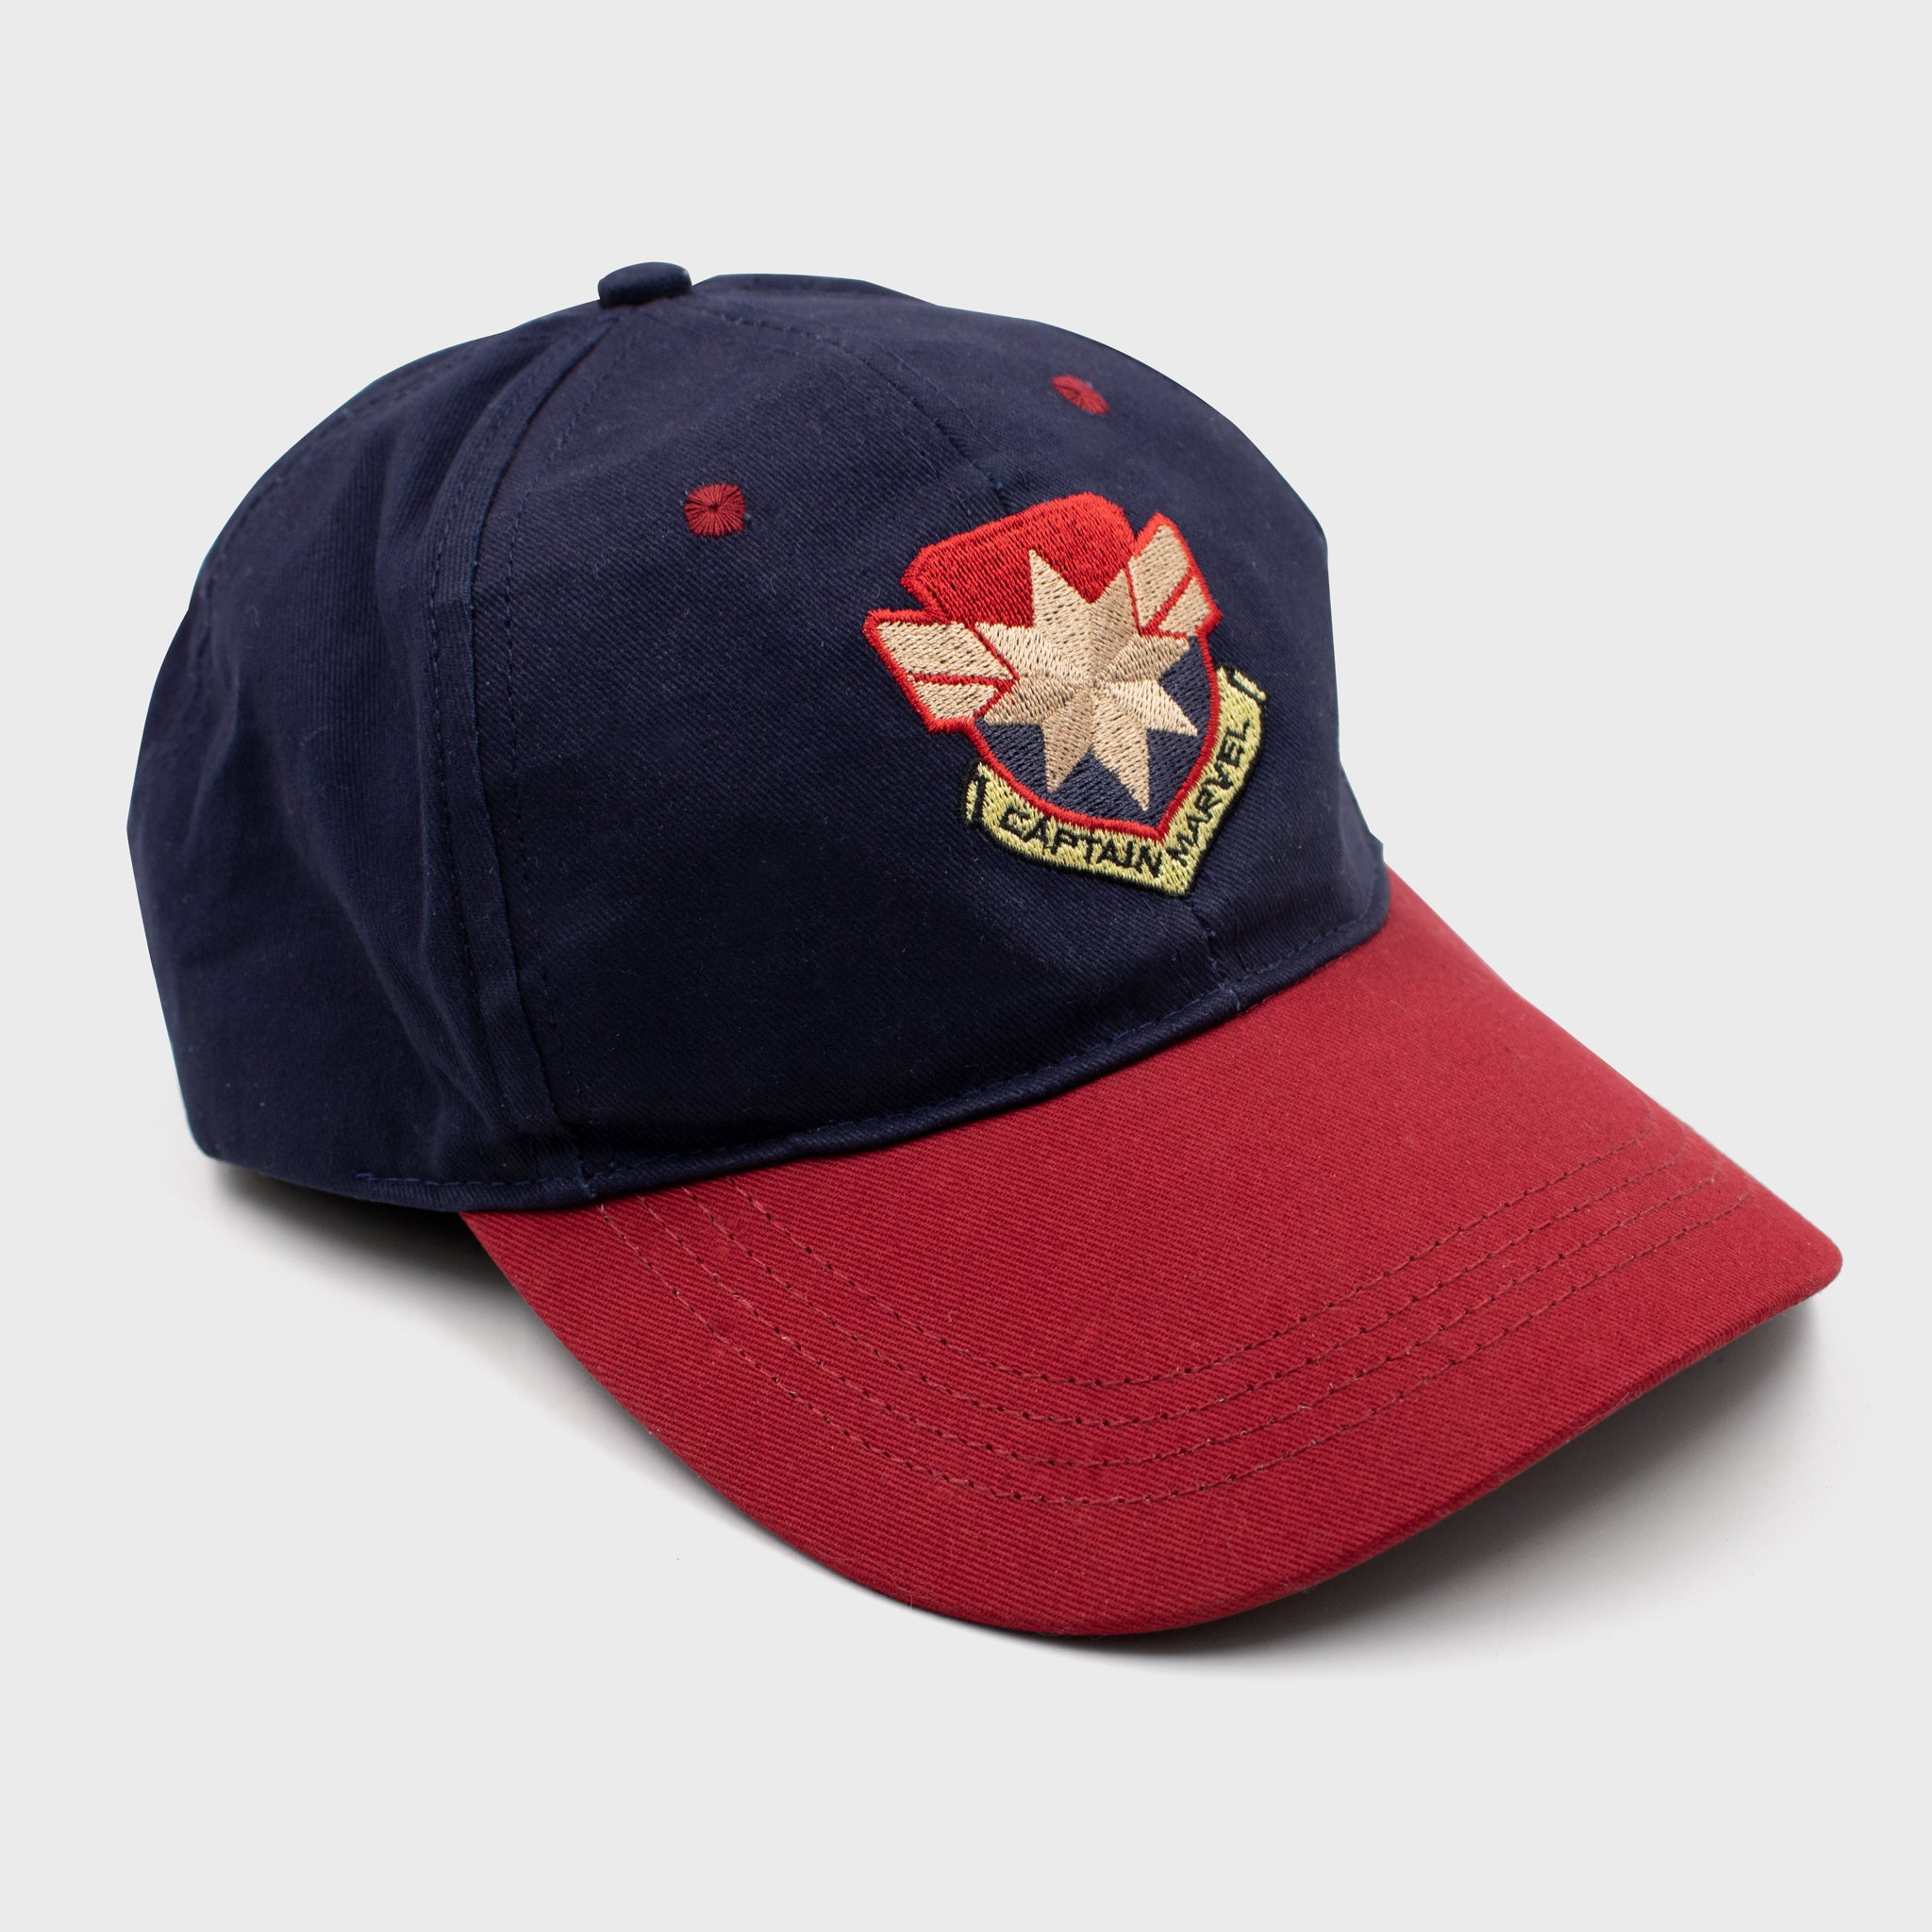 captain marvel marvel entertainment mcu movie superhero hat apparel headwear collectible collector exclusive box culturefly